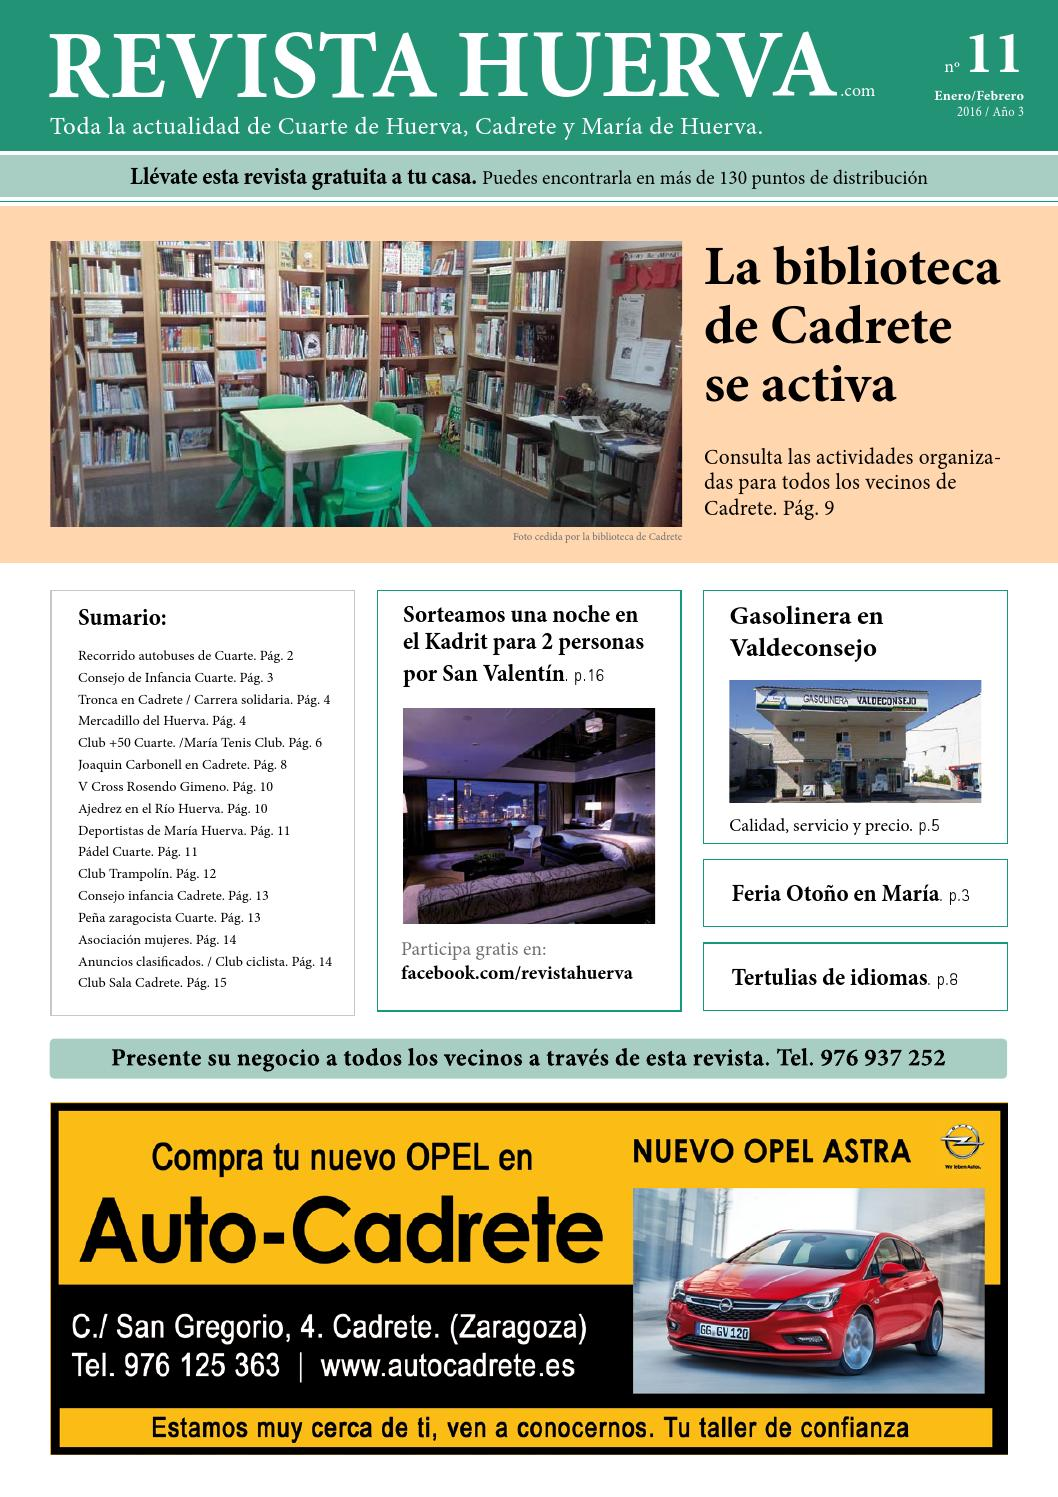 Revistahuerva11 by Revista Huerva - issuu